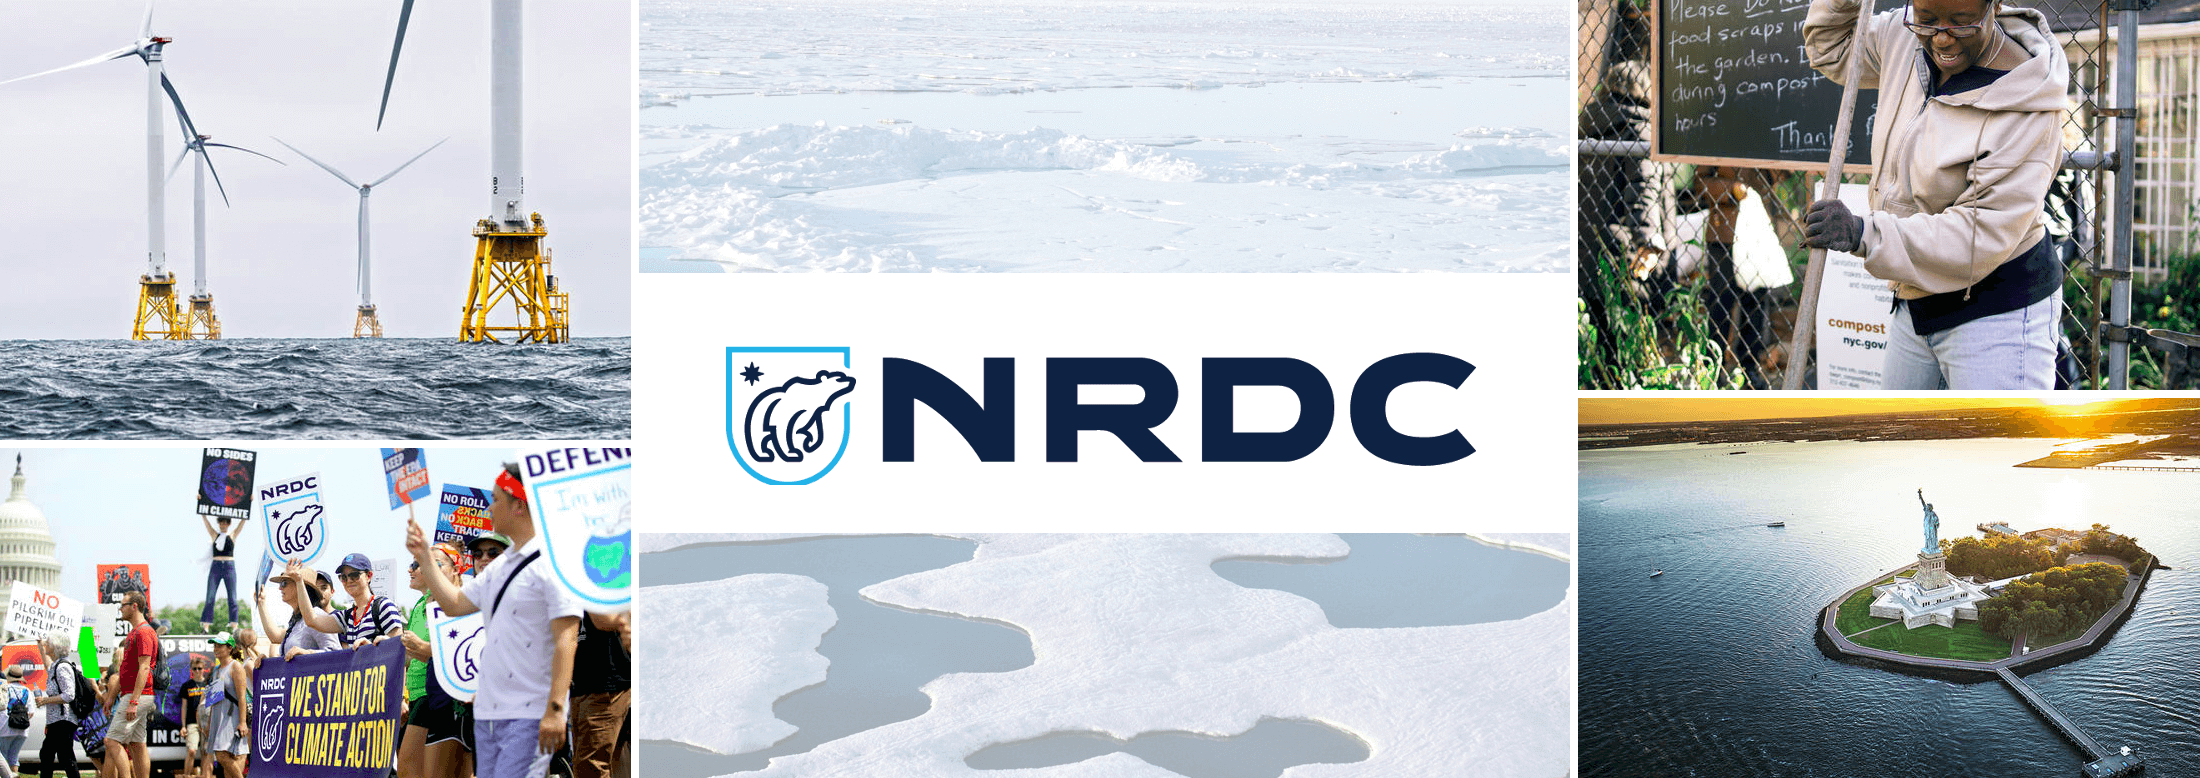 NRDC in the News Weekly Highlights: March 28, 2016